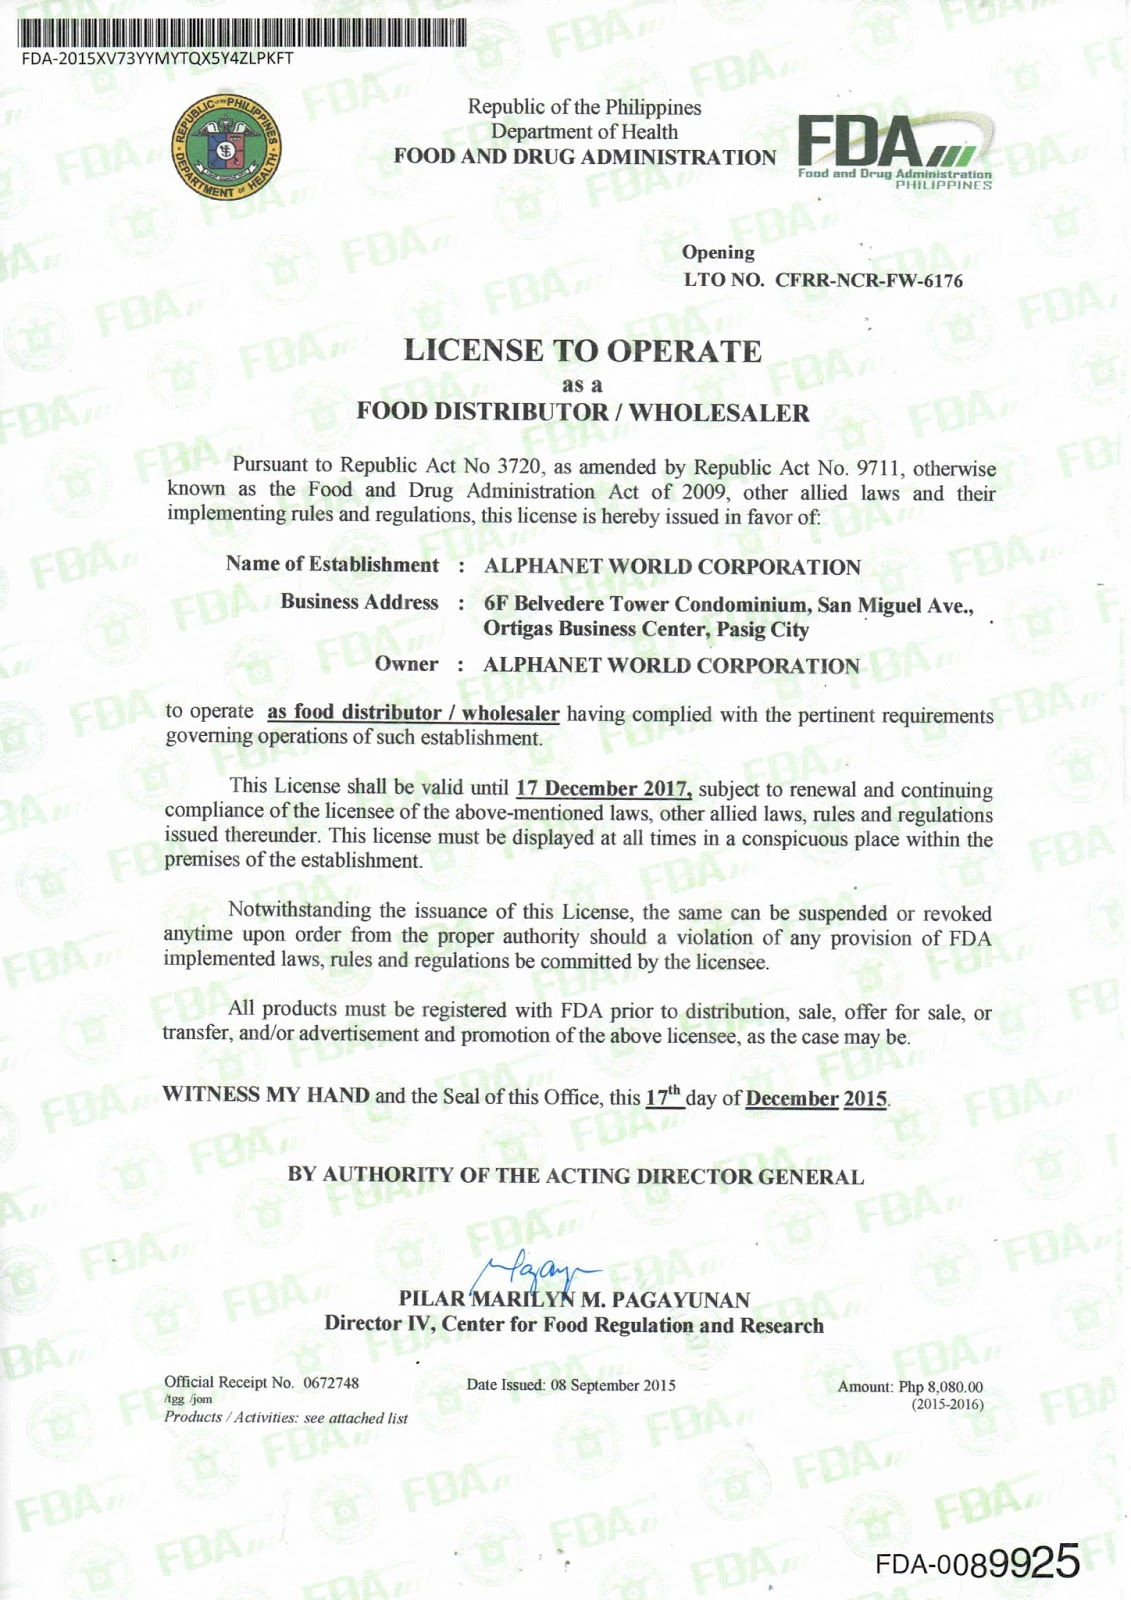 FDA License to Operate as Food Distributor/Wholesaler